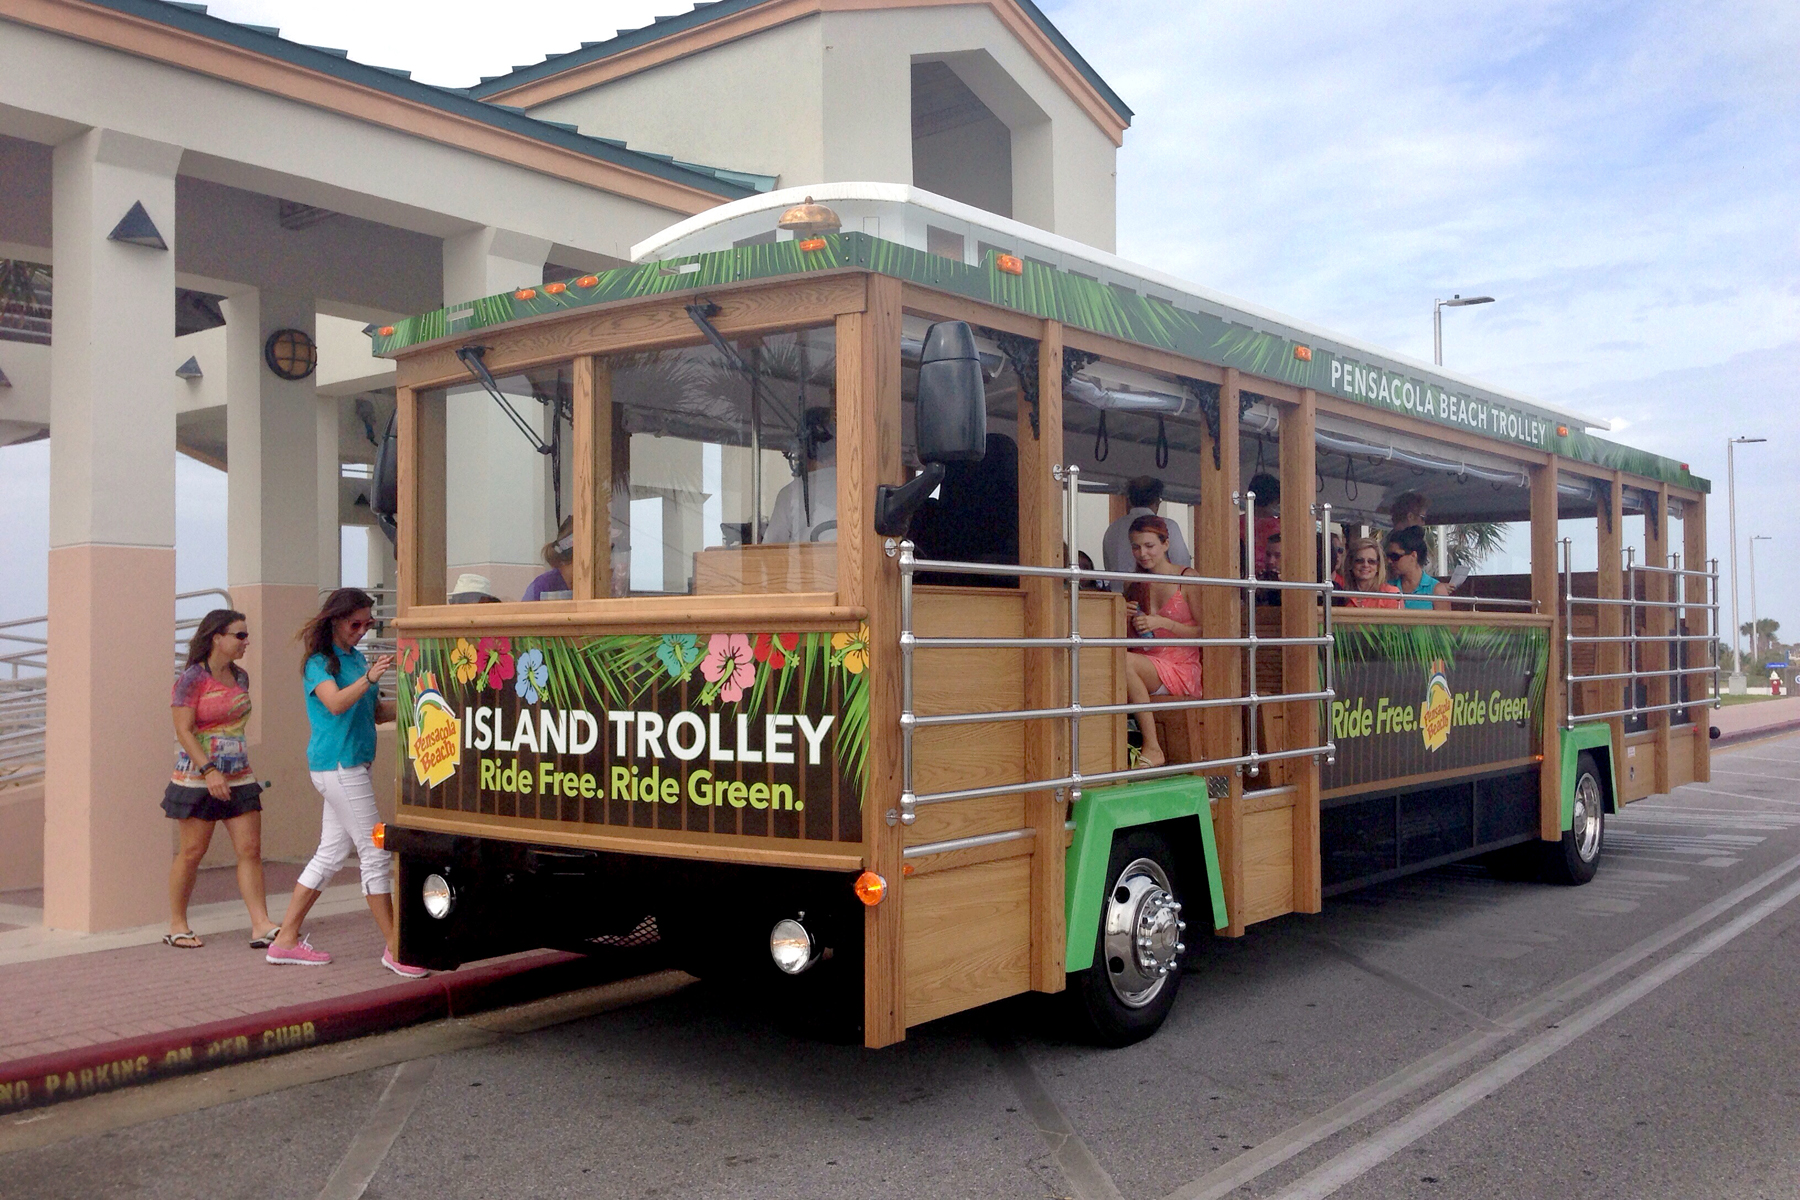 Bus shaped and decorated as a trolley